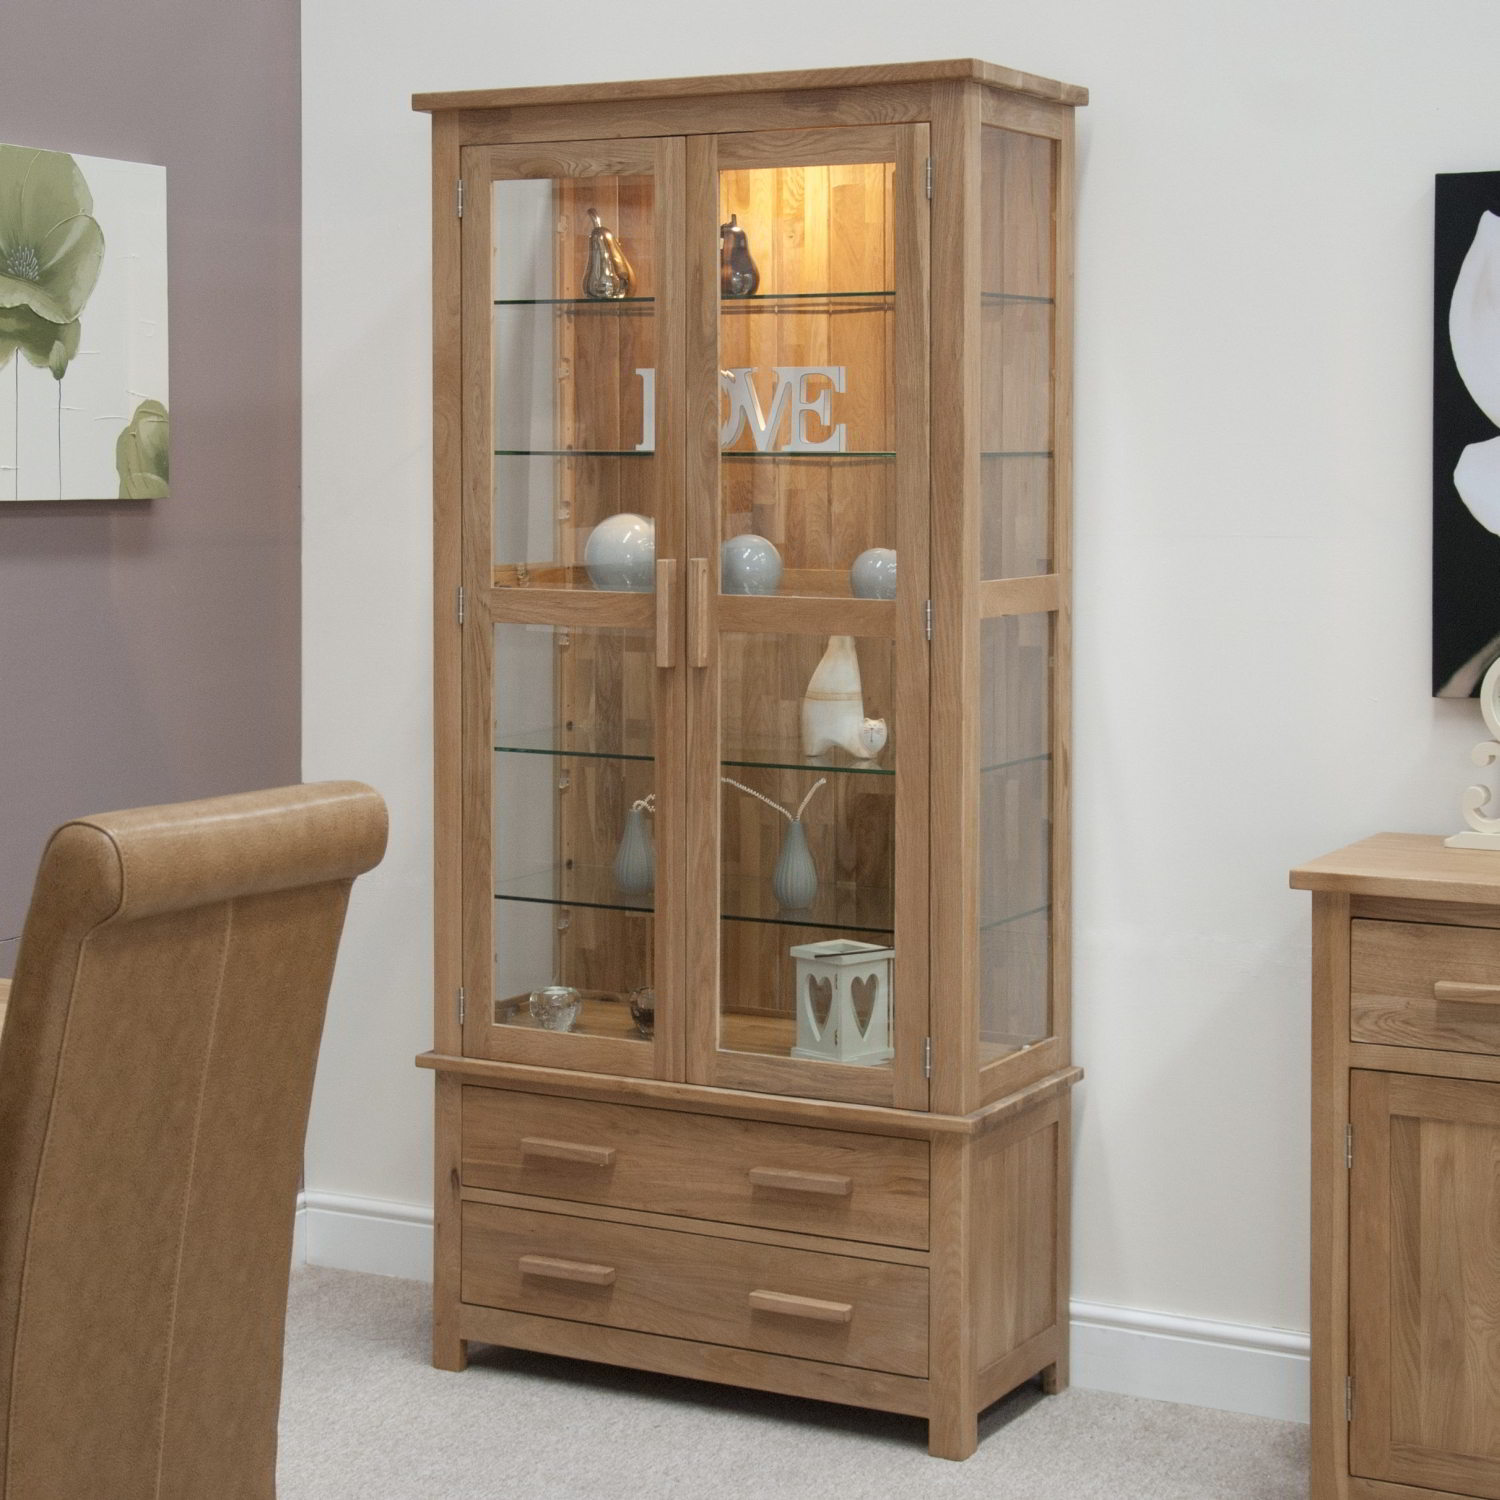 eton solid oak living room furniture glazed display cabinet cupboard